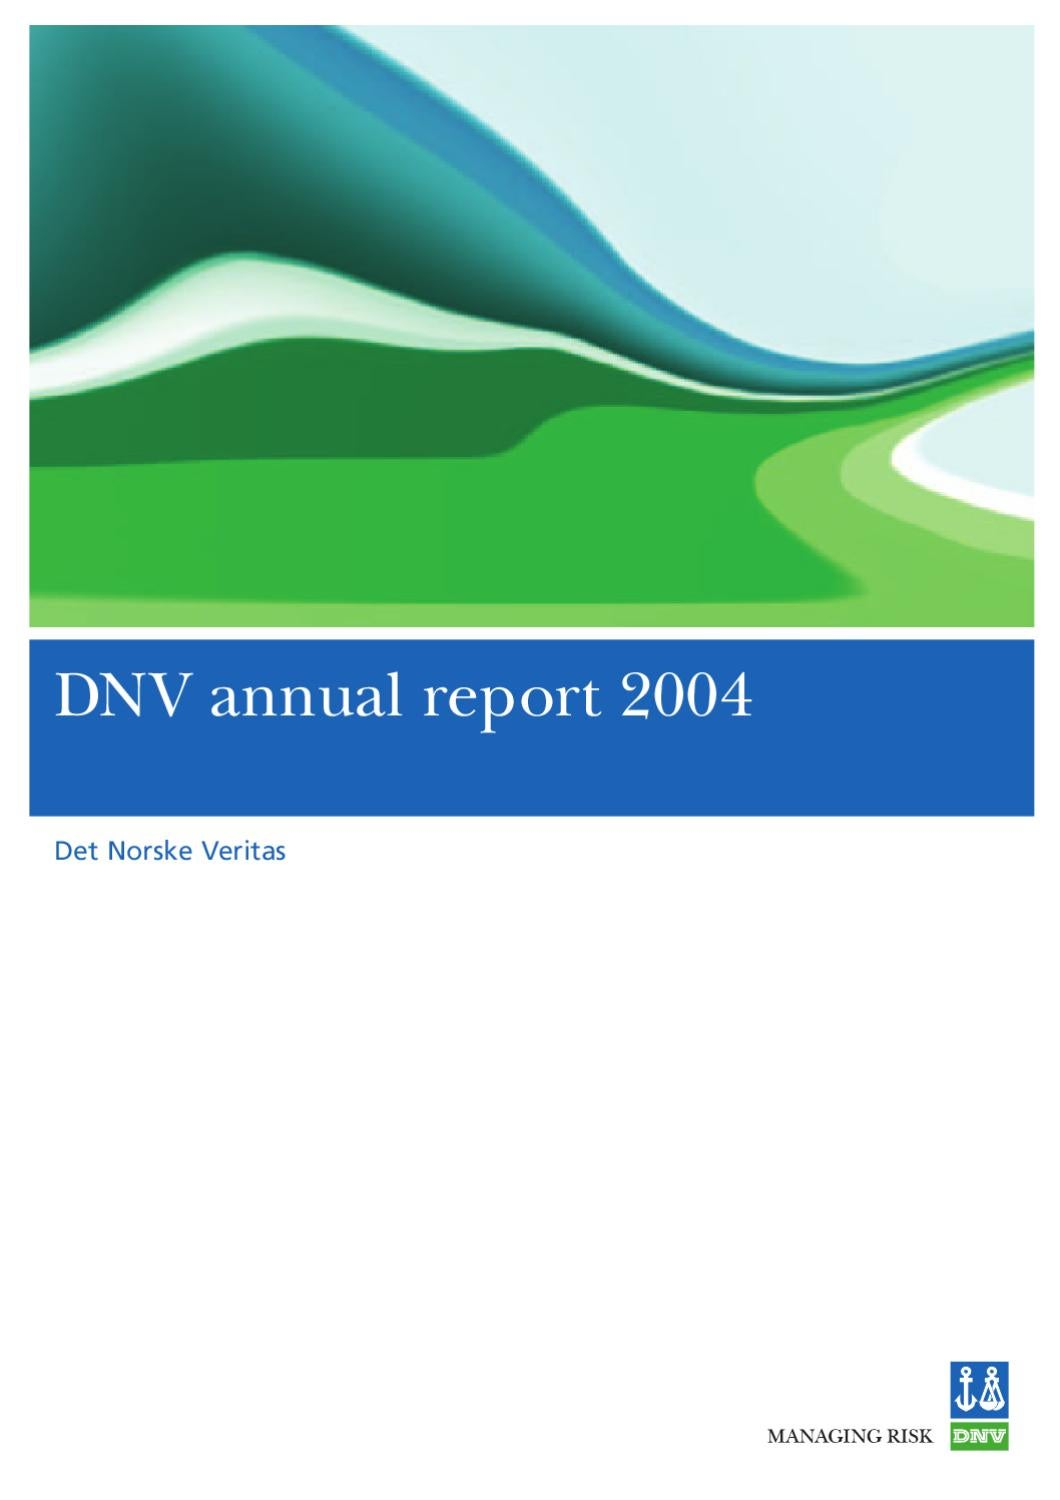 DNV annual report 2004 by DNV GL (old account) - issuu